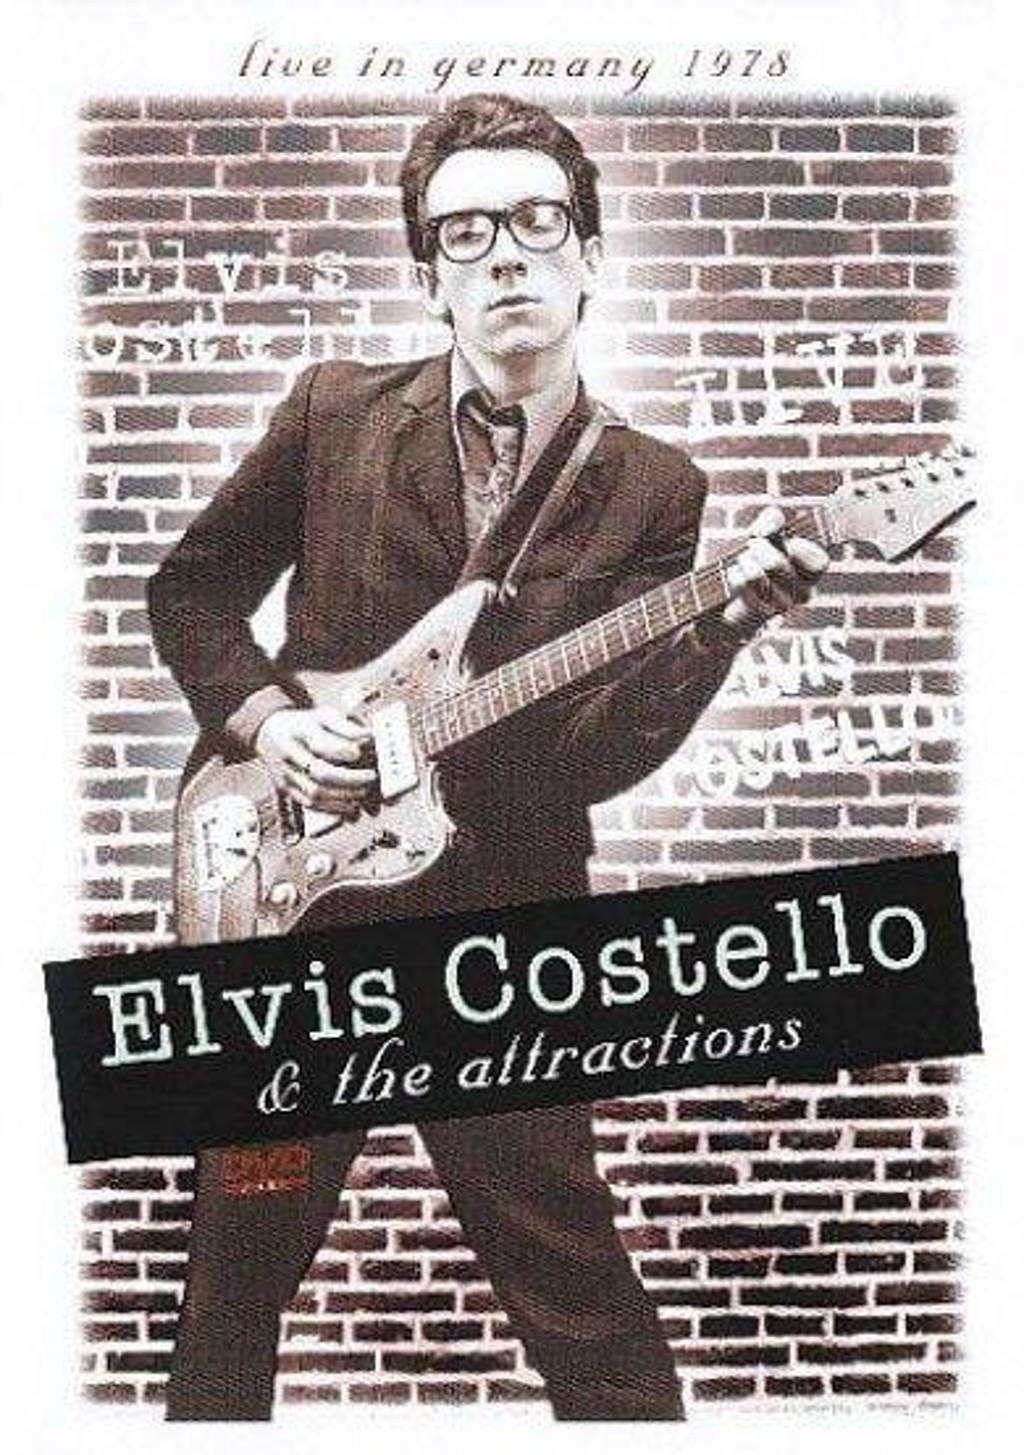 Elvis Costello & The Attractions - Live in Germany 1978 (DVD)